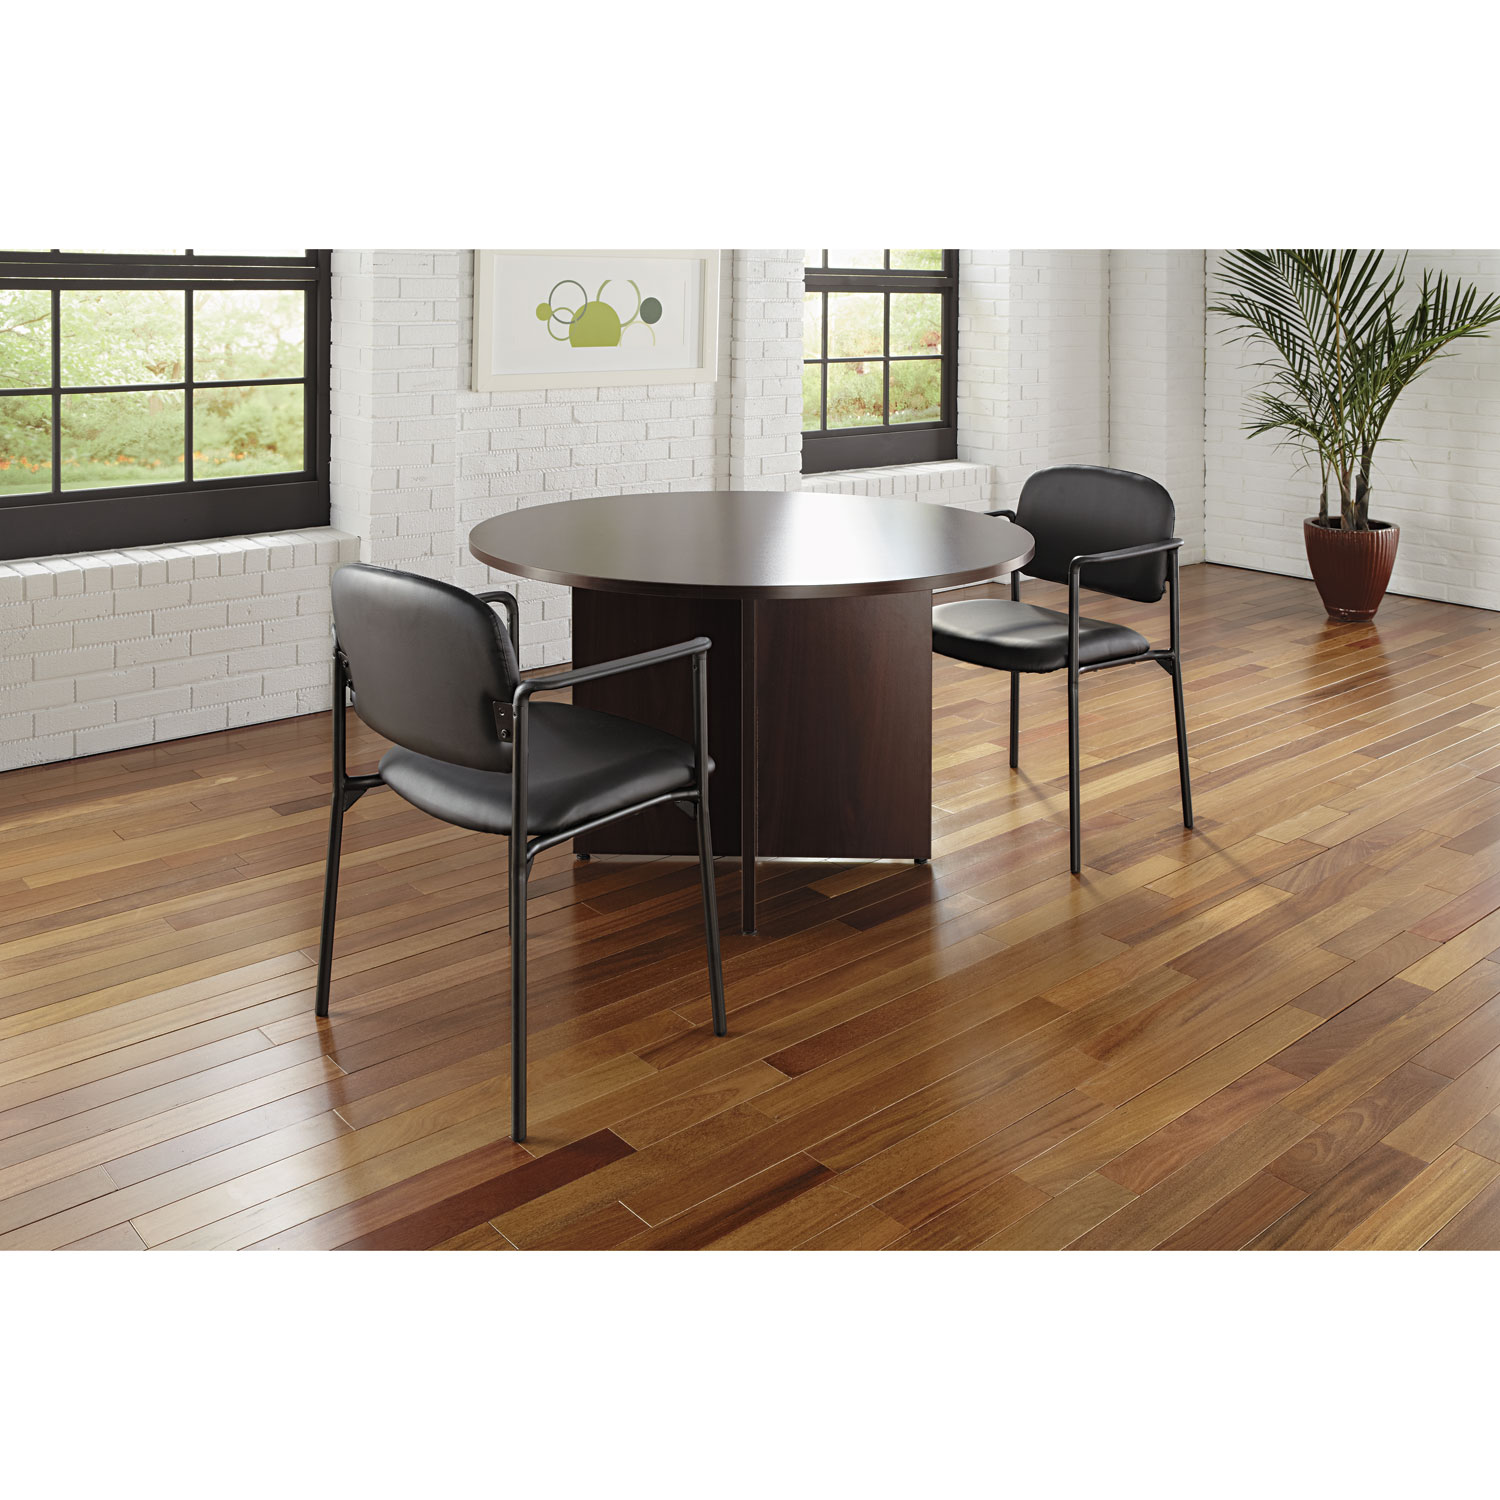 BL Laminate Series Round Conference Table By HON BSXBLCDNN - Hon 42 round conference table